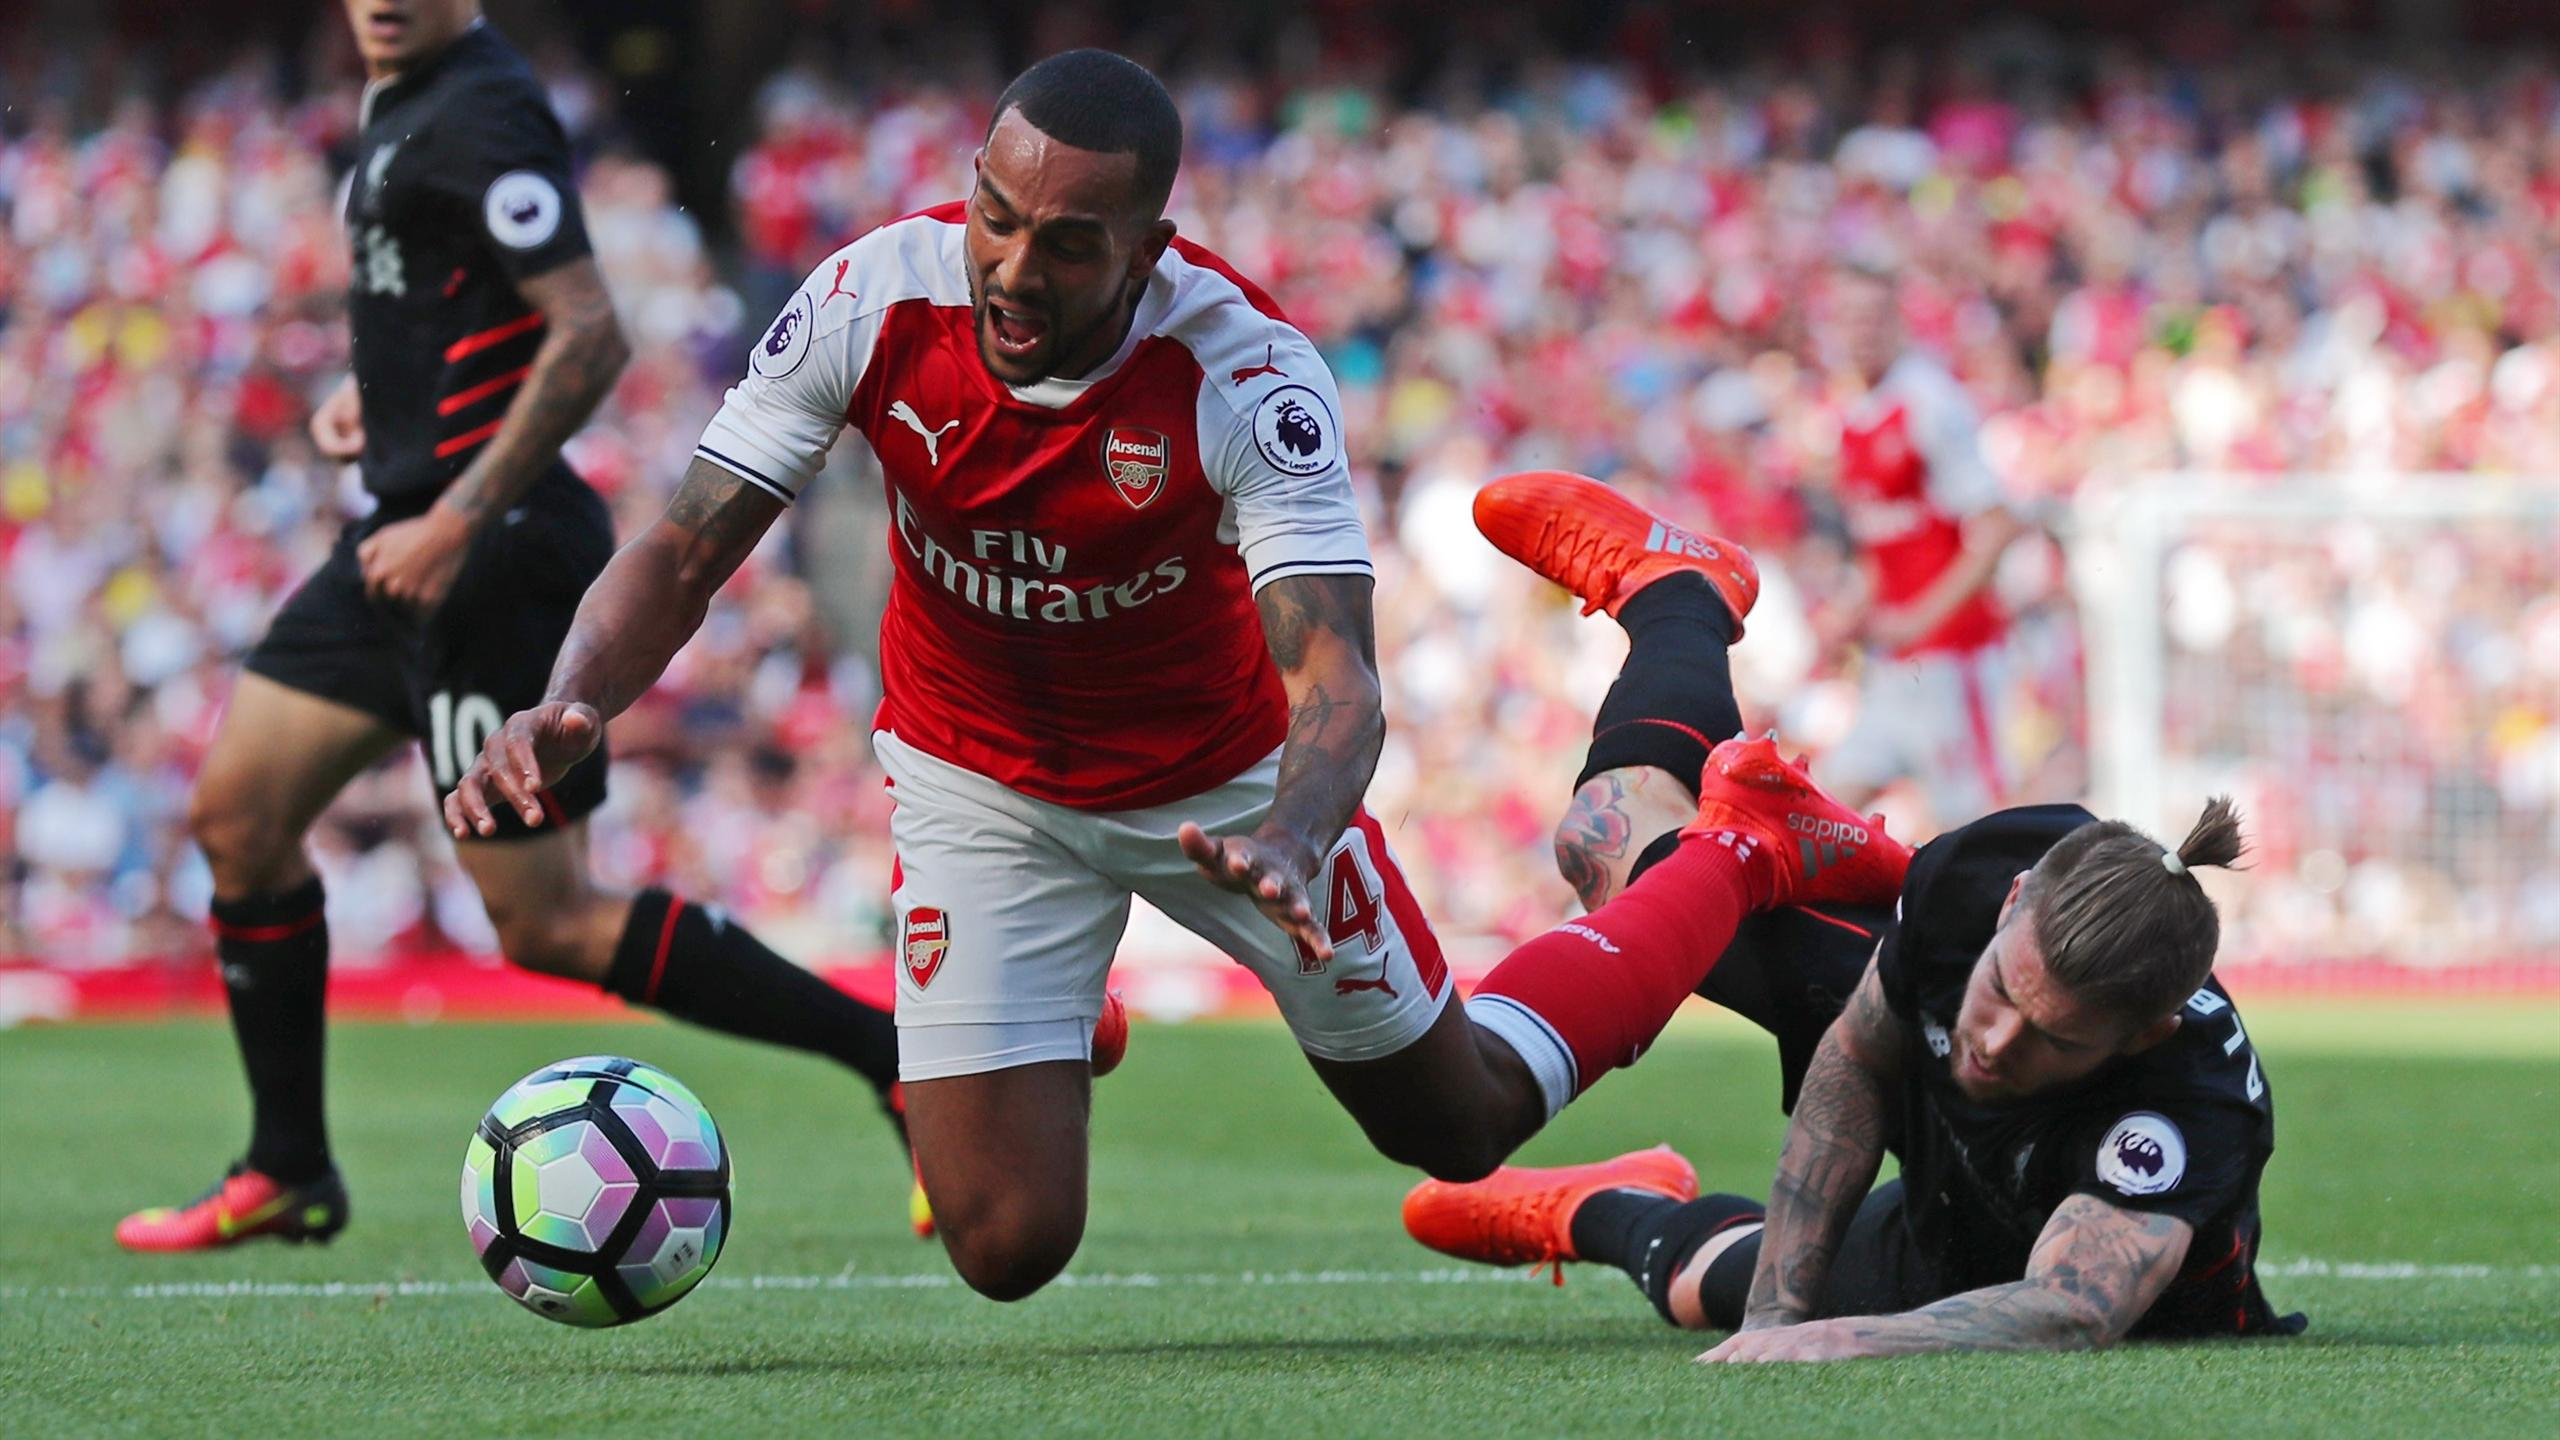 Liverpool's Alberto Moreno concedes a penalty against Arsenal's Theo Walcott